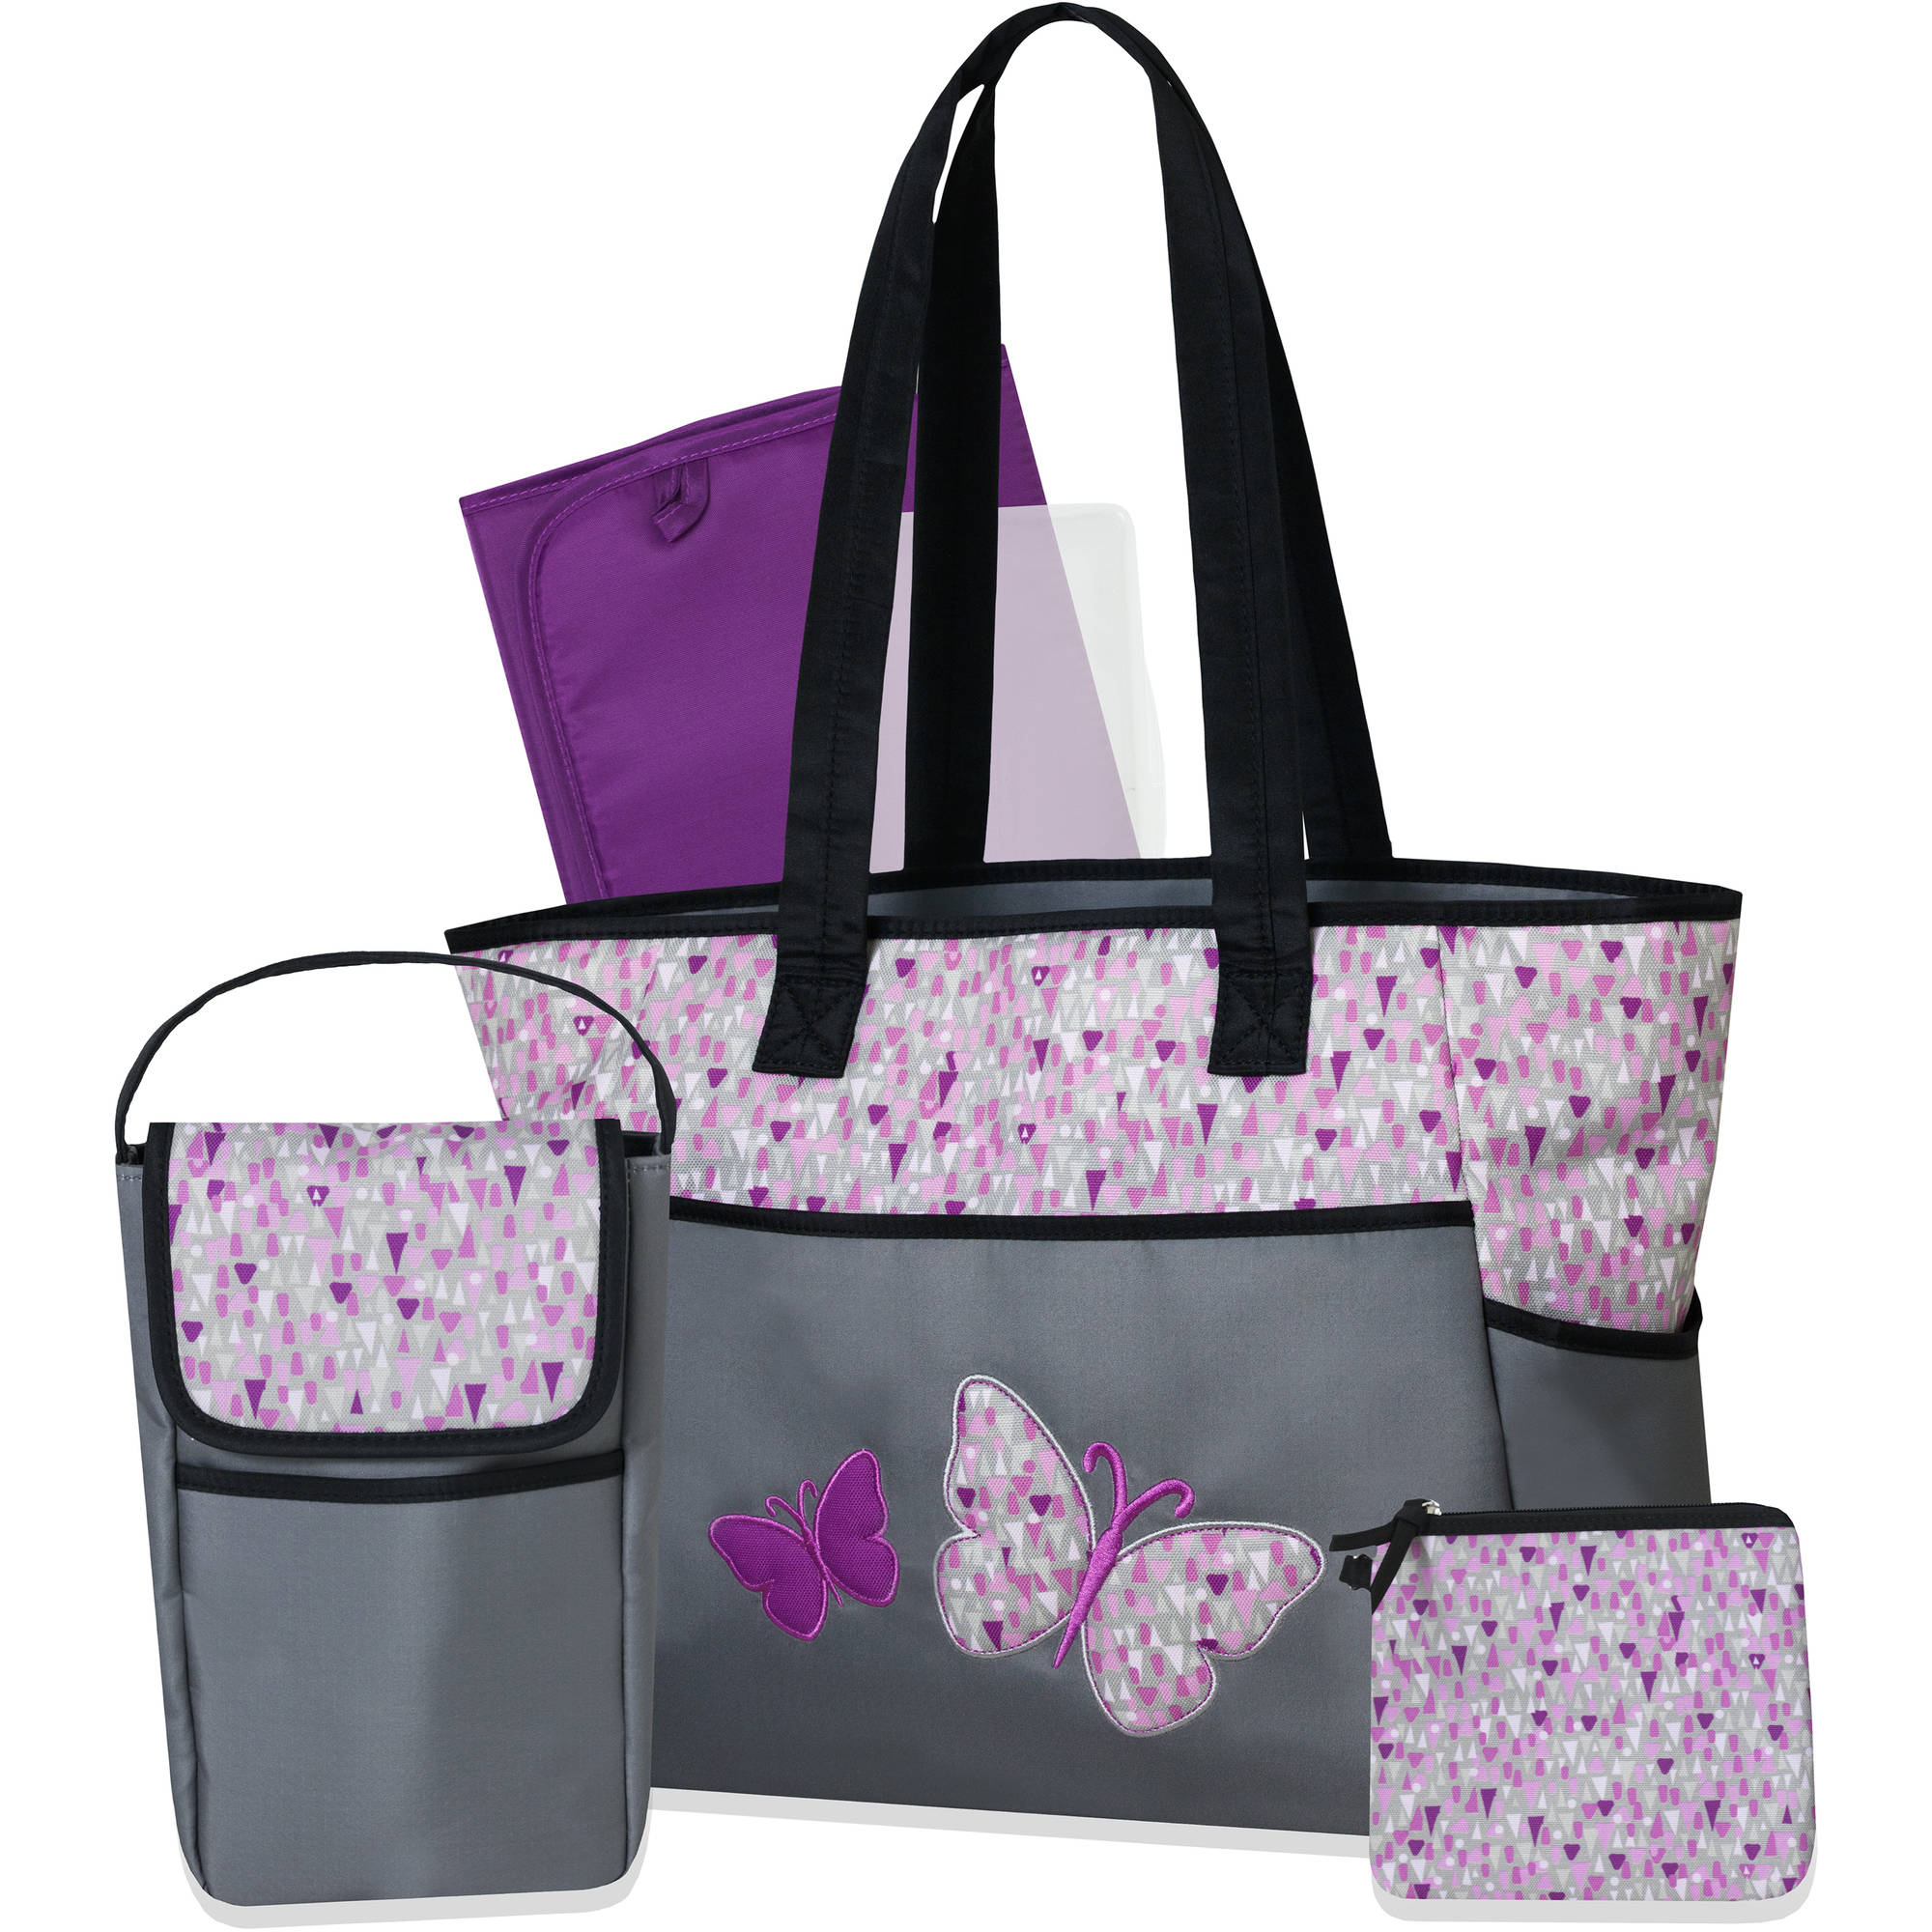 Tender Kisses Sorbet 3 Piece Diaper Bag Set with Bonus Bottle Bag